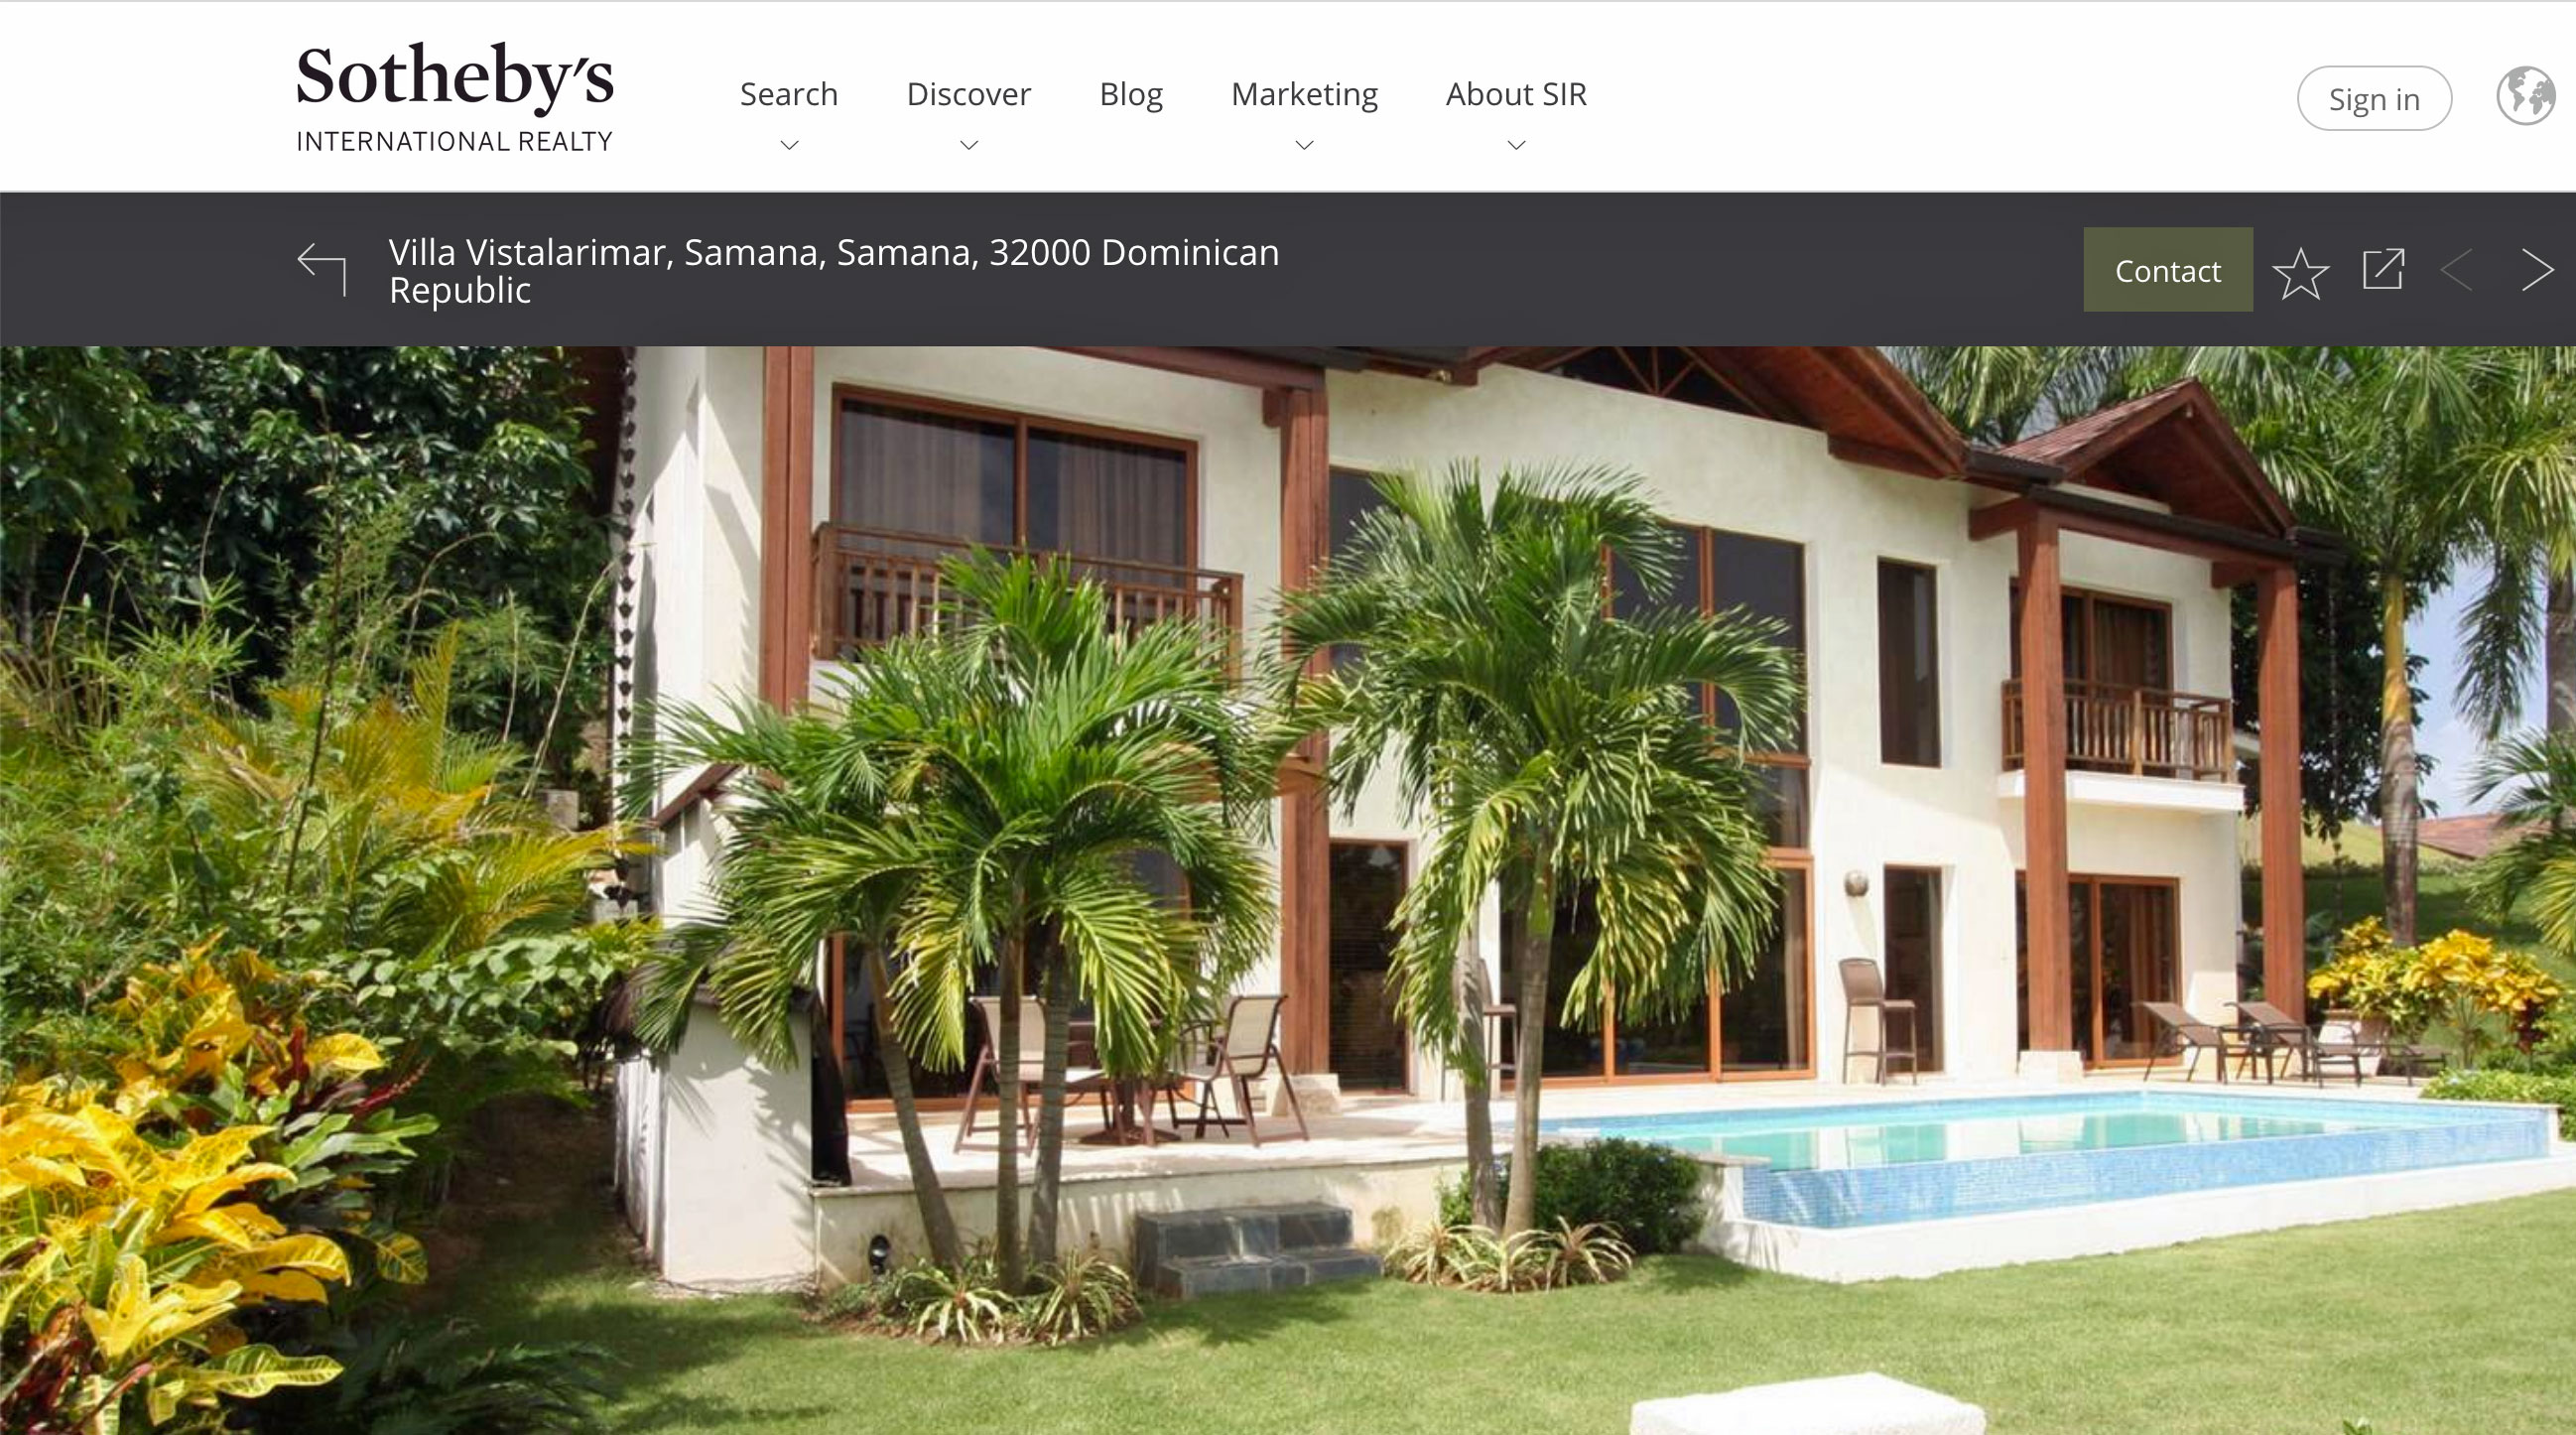 sir-puerto-bahia-villa-sothebys-web-for-sale